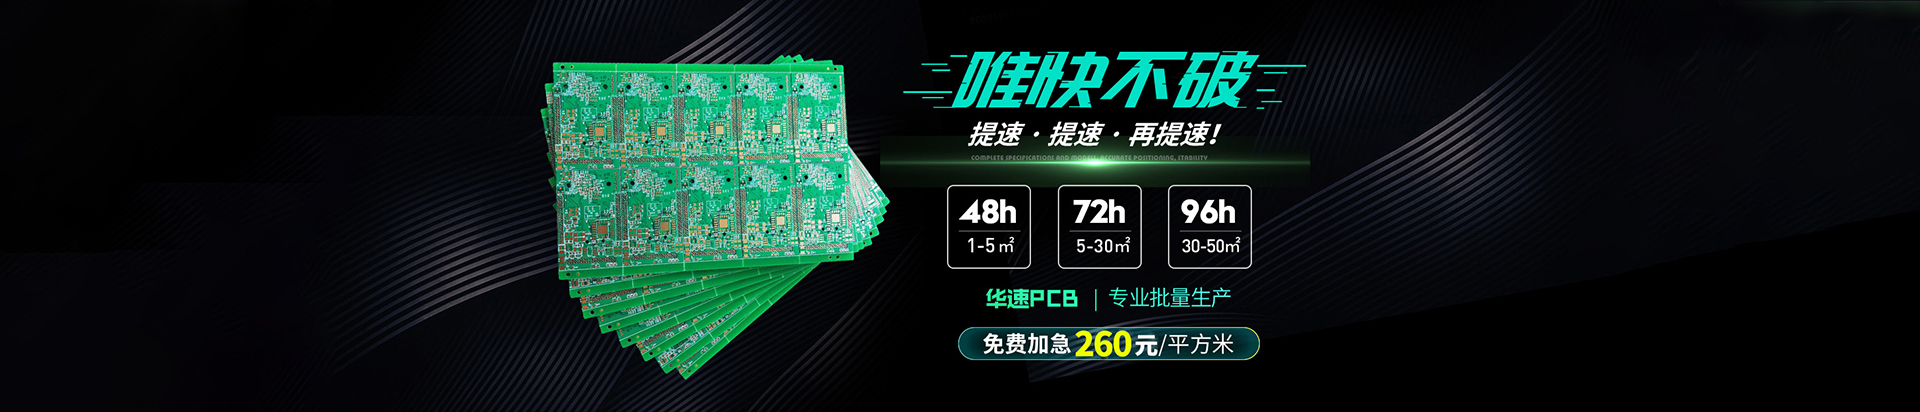 http://www.kshs-pcb.com.cn/data/images/slide/20190827143240_850.jpg